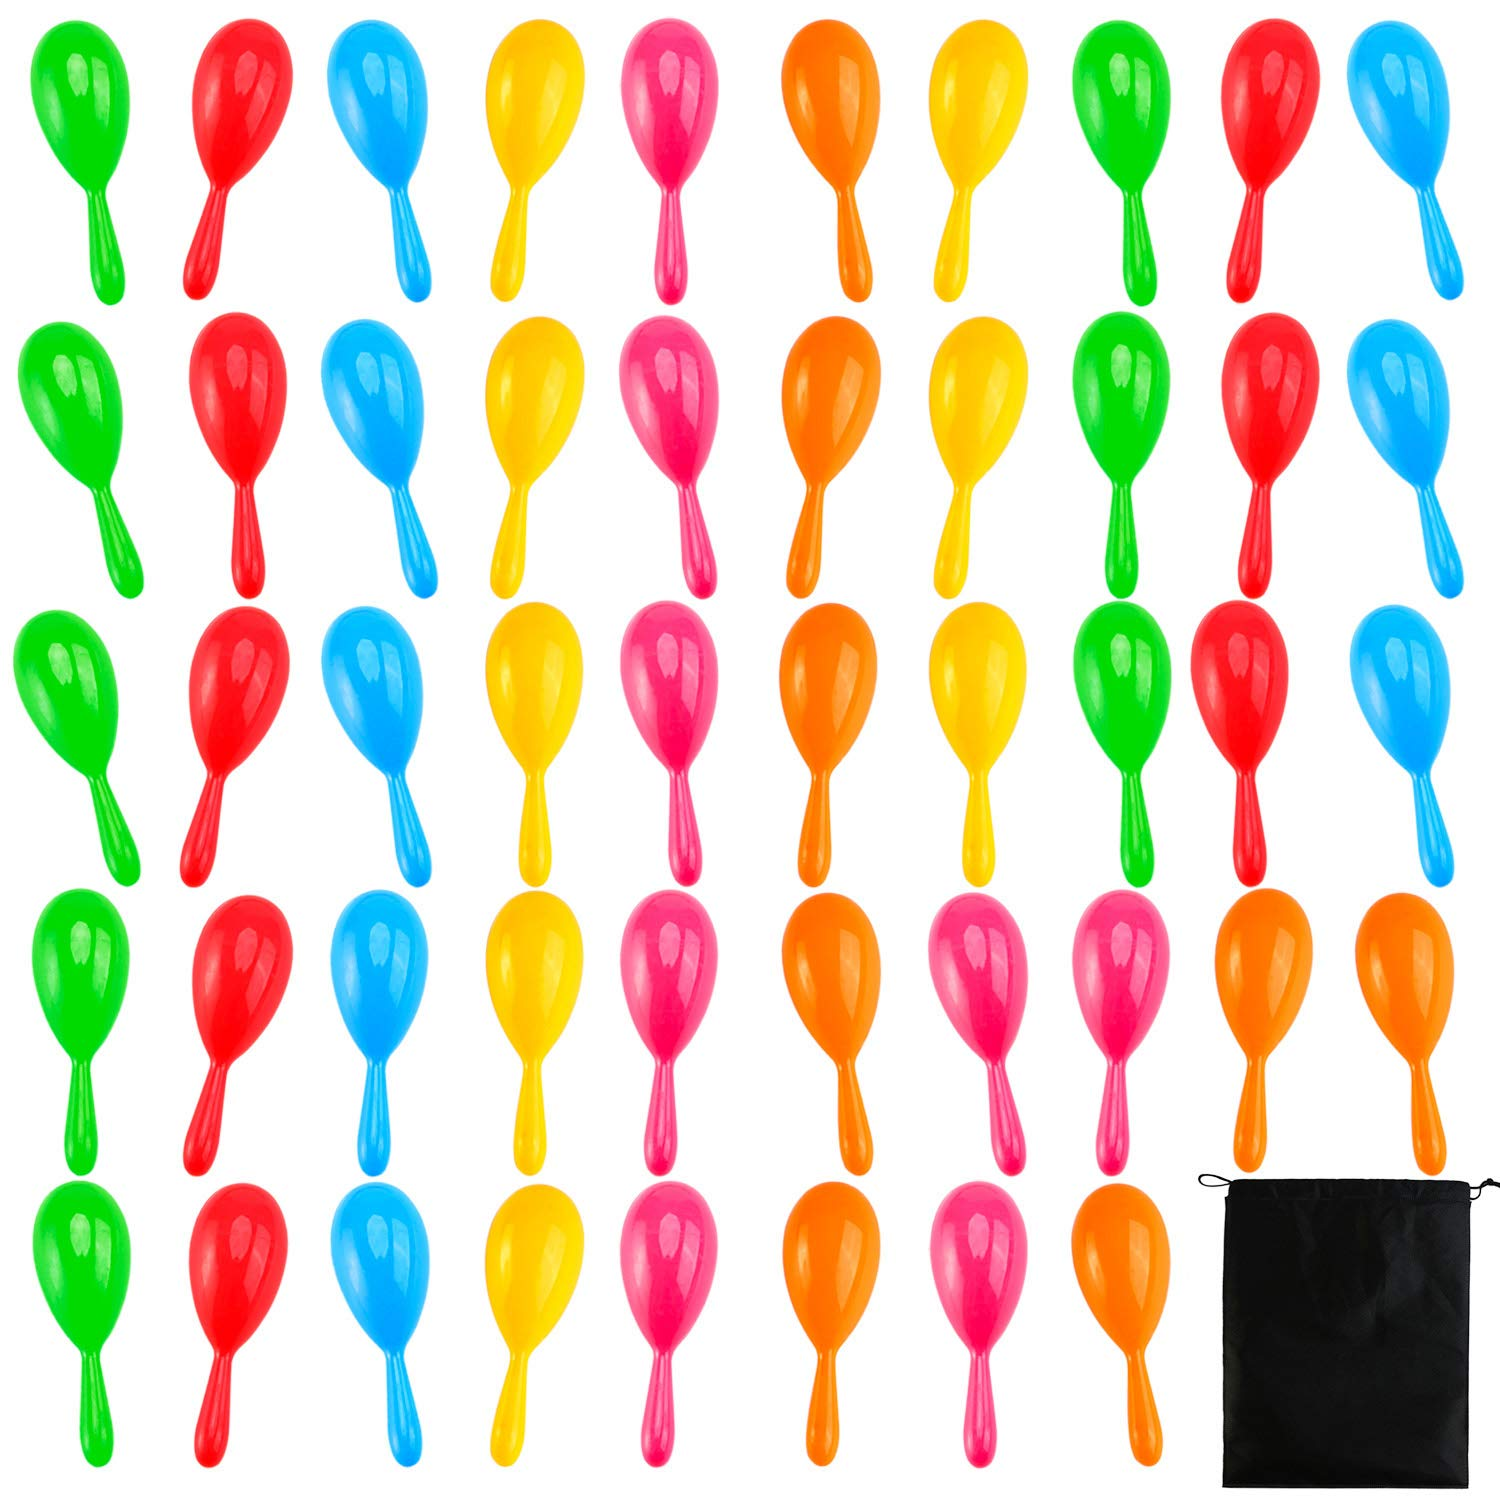 Resinta 48 Pieces Neon Maracas Shakers 6 Color Mini Noisemaker Bulk Bright Colorful Noise Maker with Drawstring Bag for Classroom Musical Instrument and Mexican Fiesta Party Favors, 4 Inch by Resinta